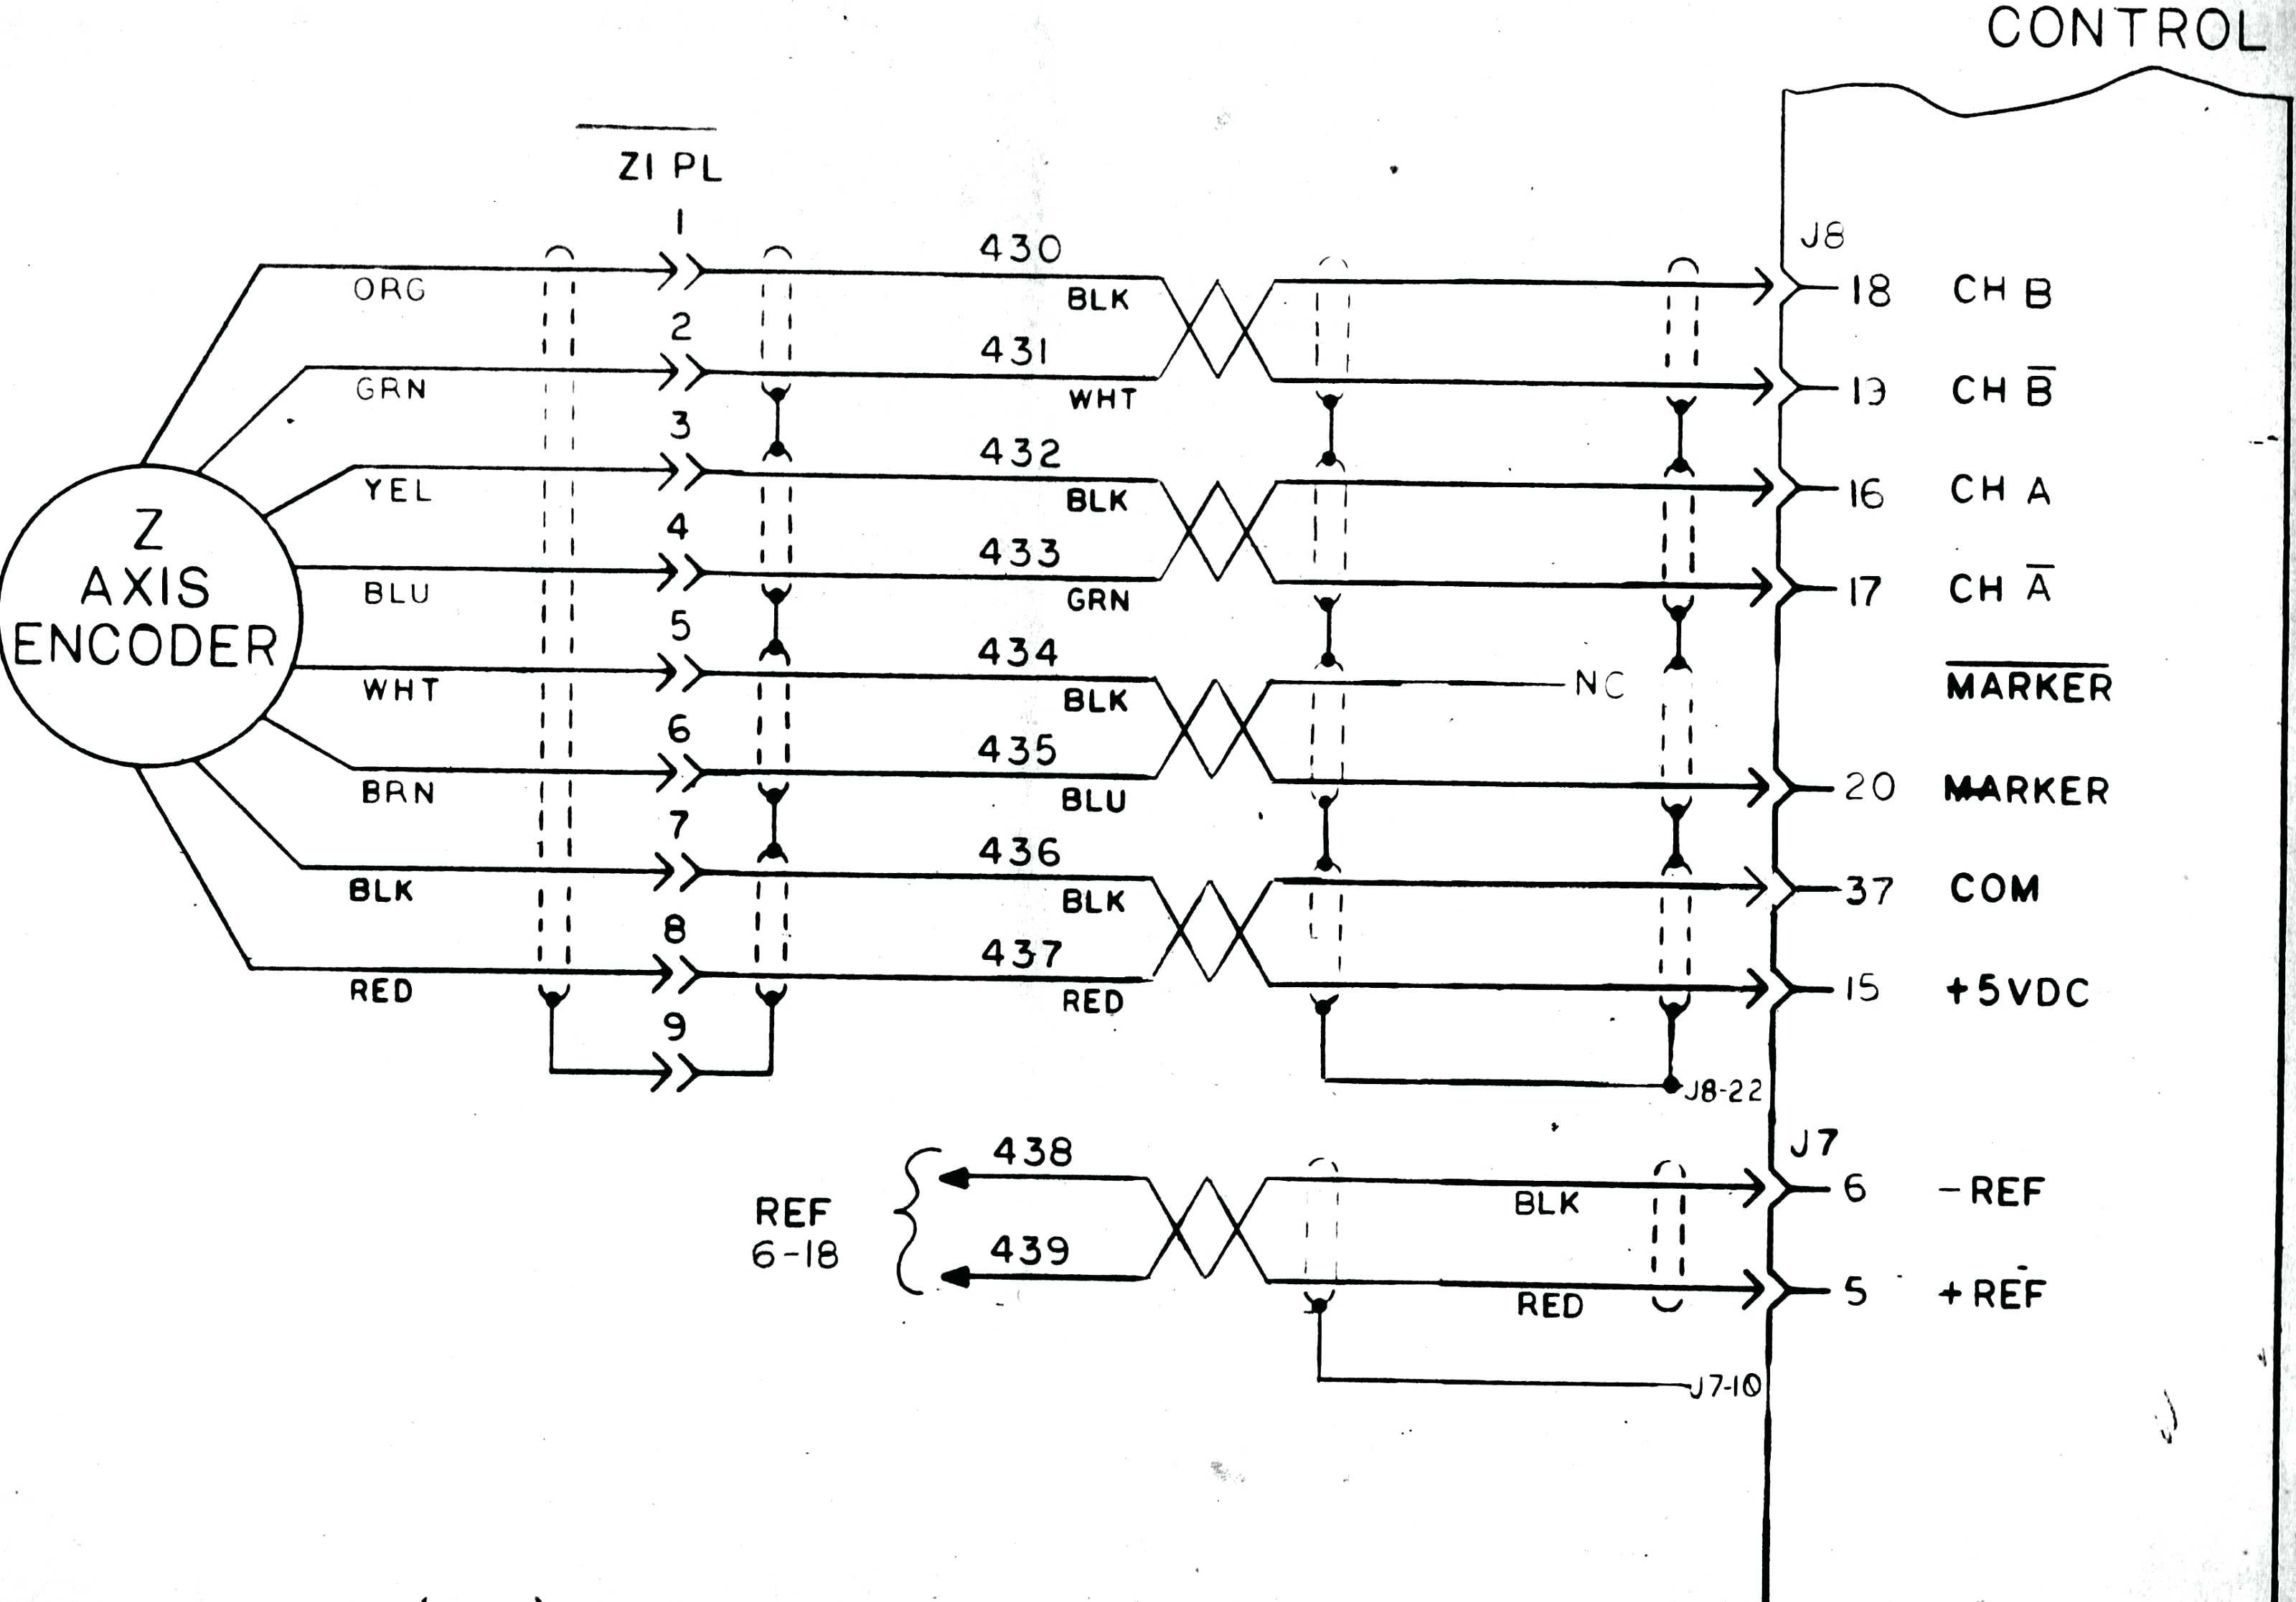 Encoder Wiring Diagram | Wiring Diagram on laser wire diagram, brake wire diagram, audio wire diagram, camera wire diagram, tachometer wire diagram, digital wire diagram, lcd wire diagram, pc wire diagram, lock wire diagram, amplifier wire diagram, battery wire diagram, receiver wire diagram, generator wire diagram, network wire diagram, resistor wire diagram, cable wire diagram, transformer wire diagram, contactor wire diagram, system wire diagram, thermocouple wire diagram,